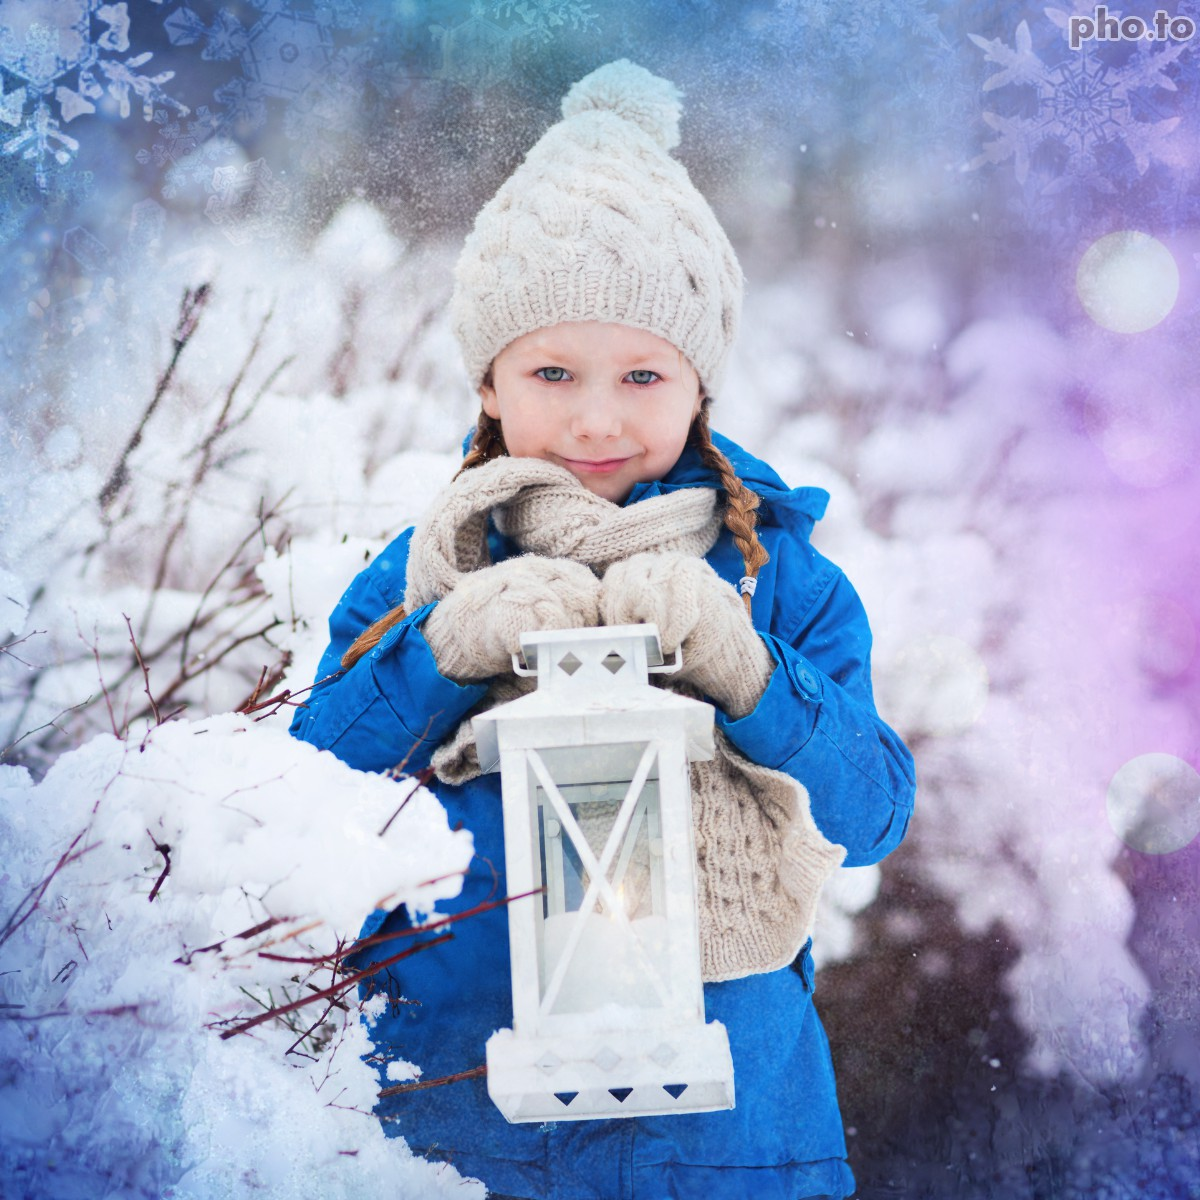 Child's winter photo is more snowy now with  online winter photo frame.